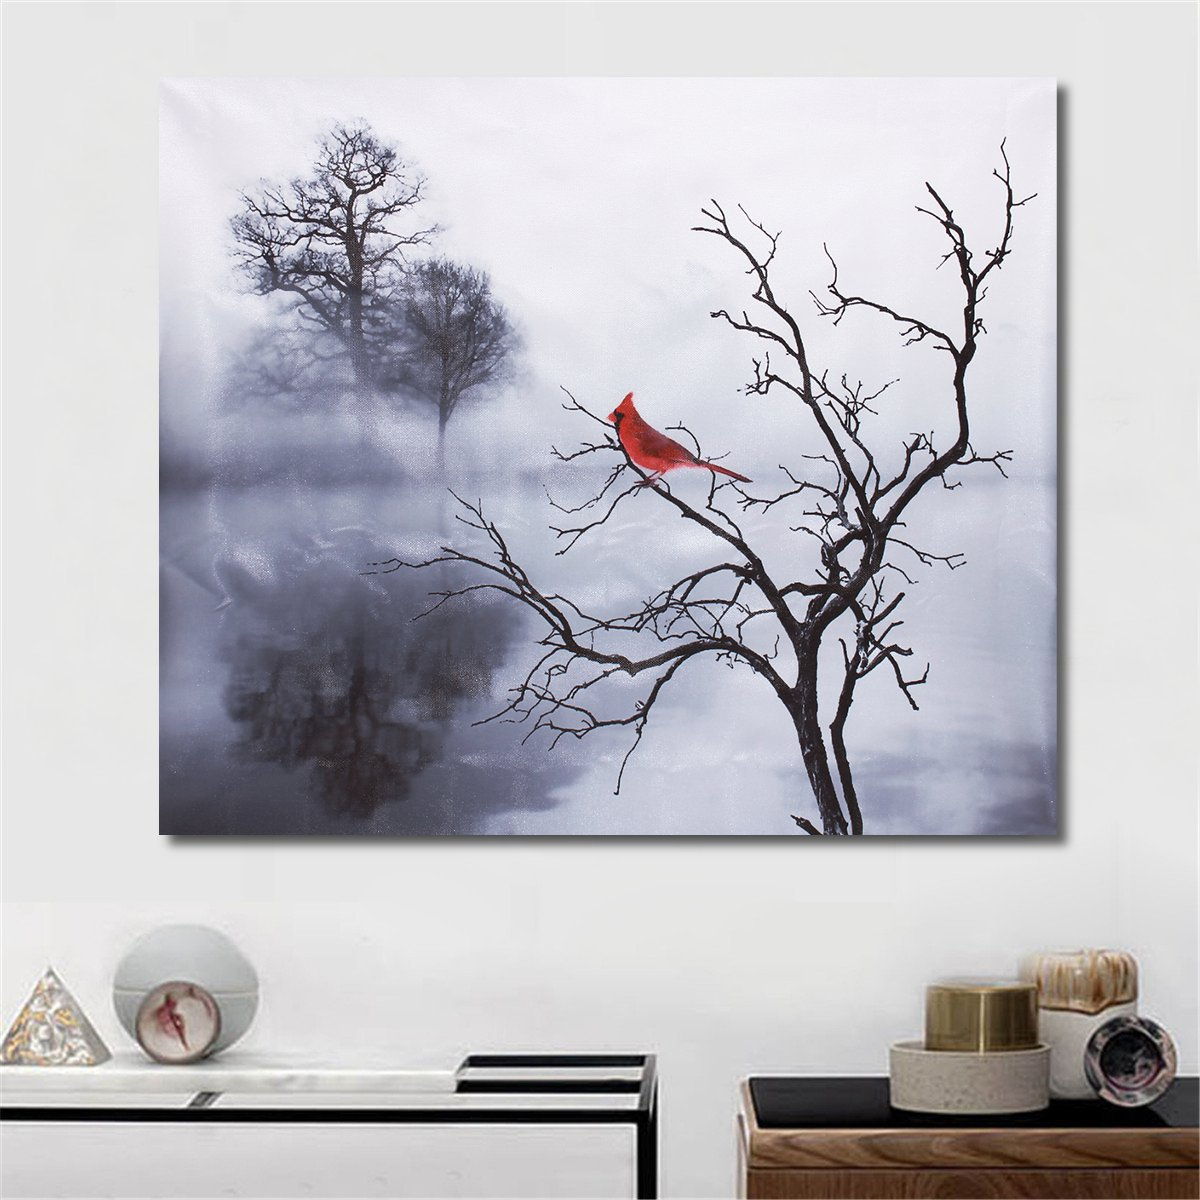 Modern Red Bird Tree Canvas Oil Printed Paintings Home Wall Art Decor Unframed Decorations